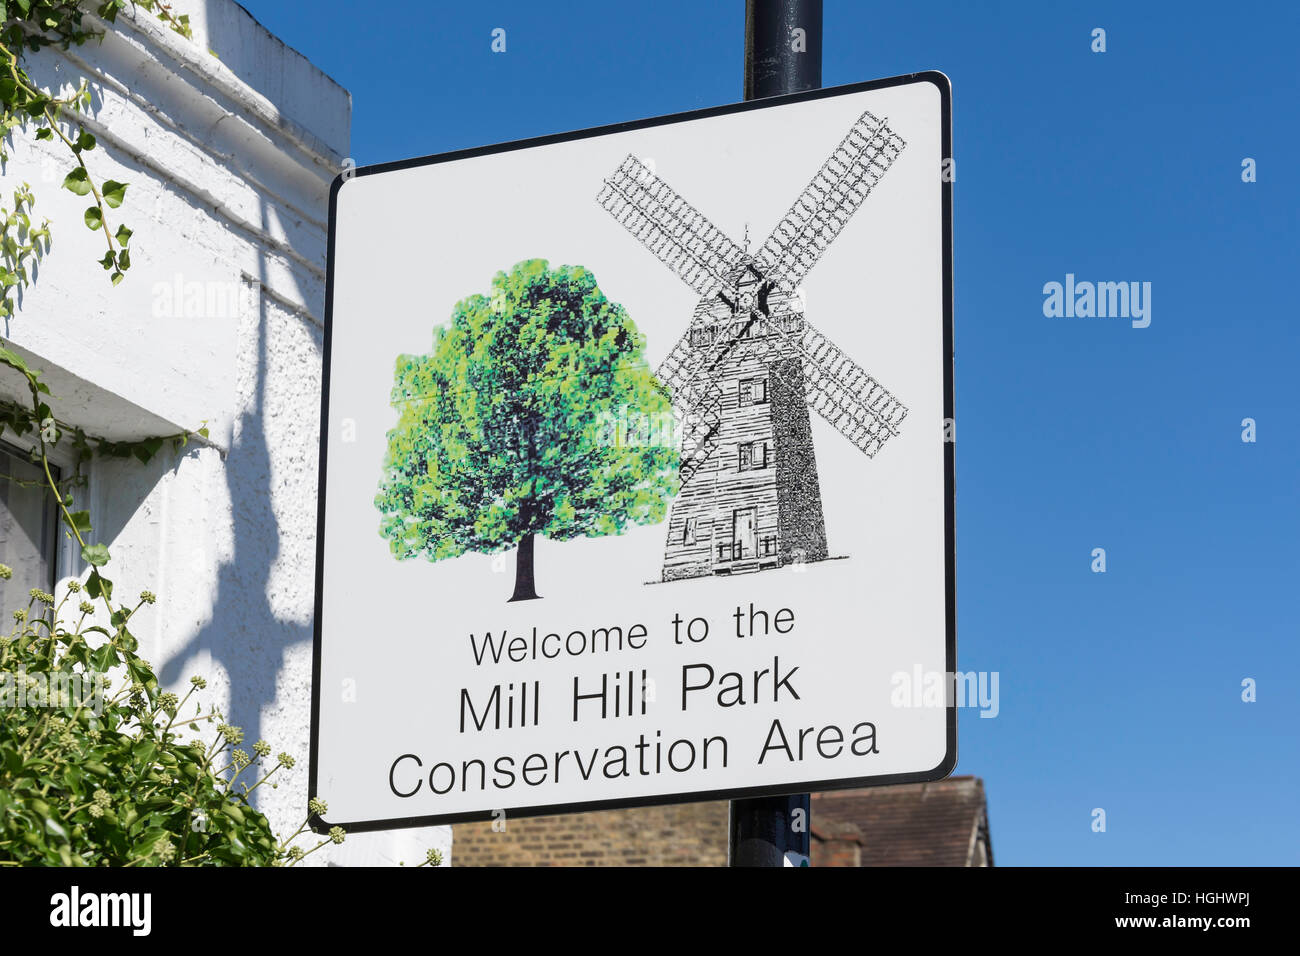 Mill Hill Conservation Area sign, Gunnersbury Lane, Acton, London Borough of Ealing, Greater London, England, United - Stock Image